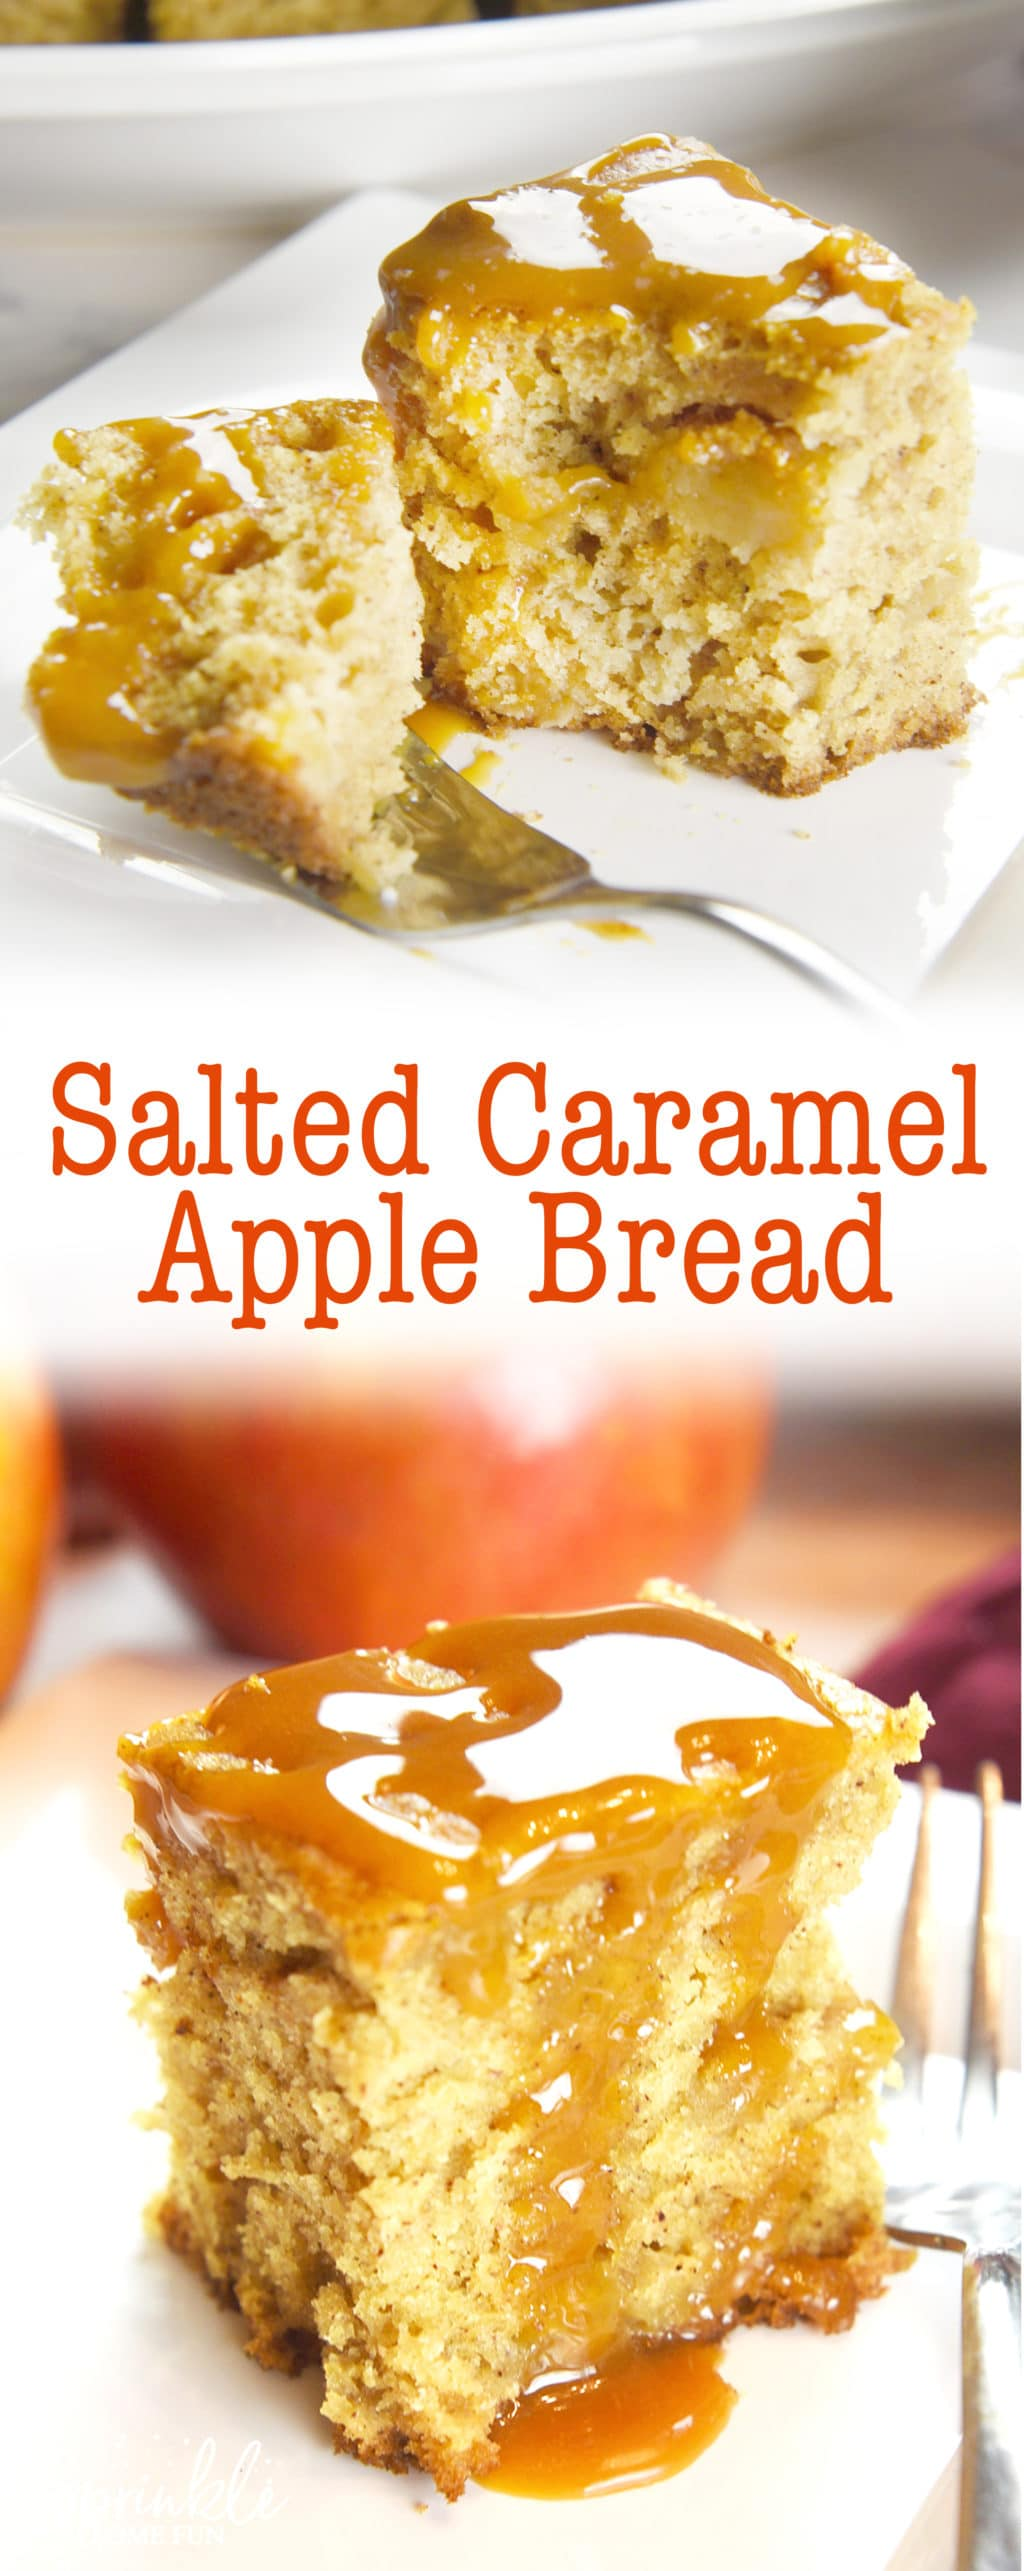 Salted Caramel Apple Bread is a spiced bread with a salty-sweet touch of caramel on top.  This bread pairs deliciously with a warm cup of tea!